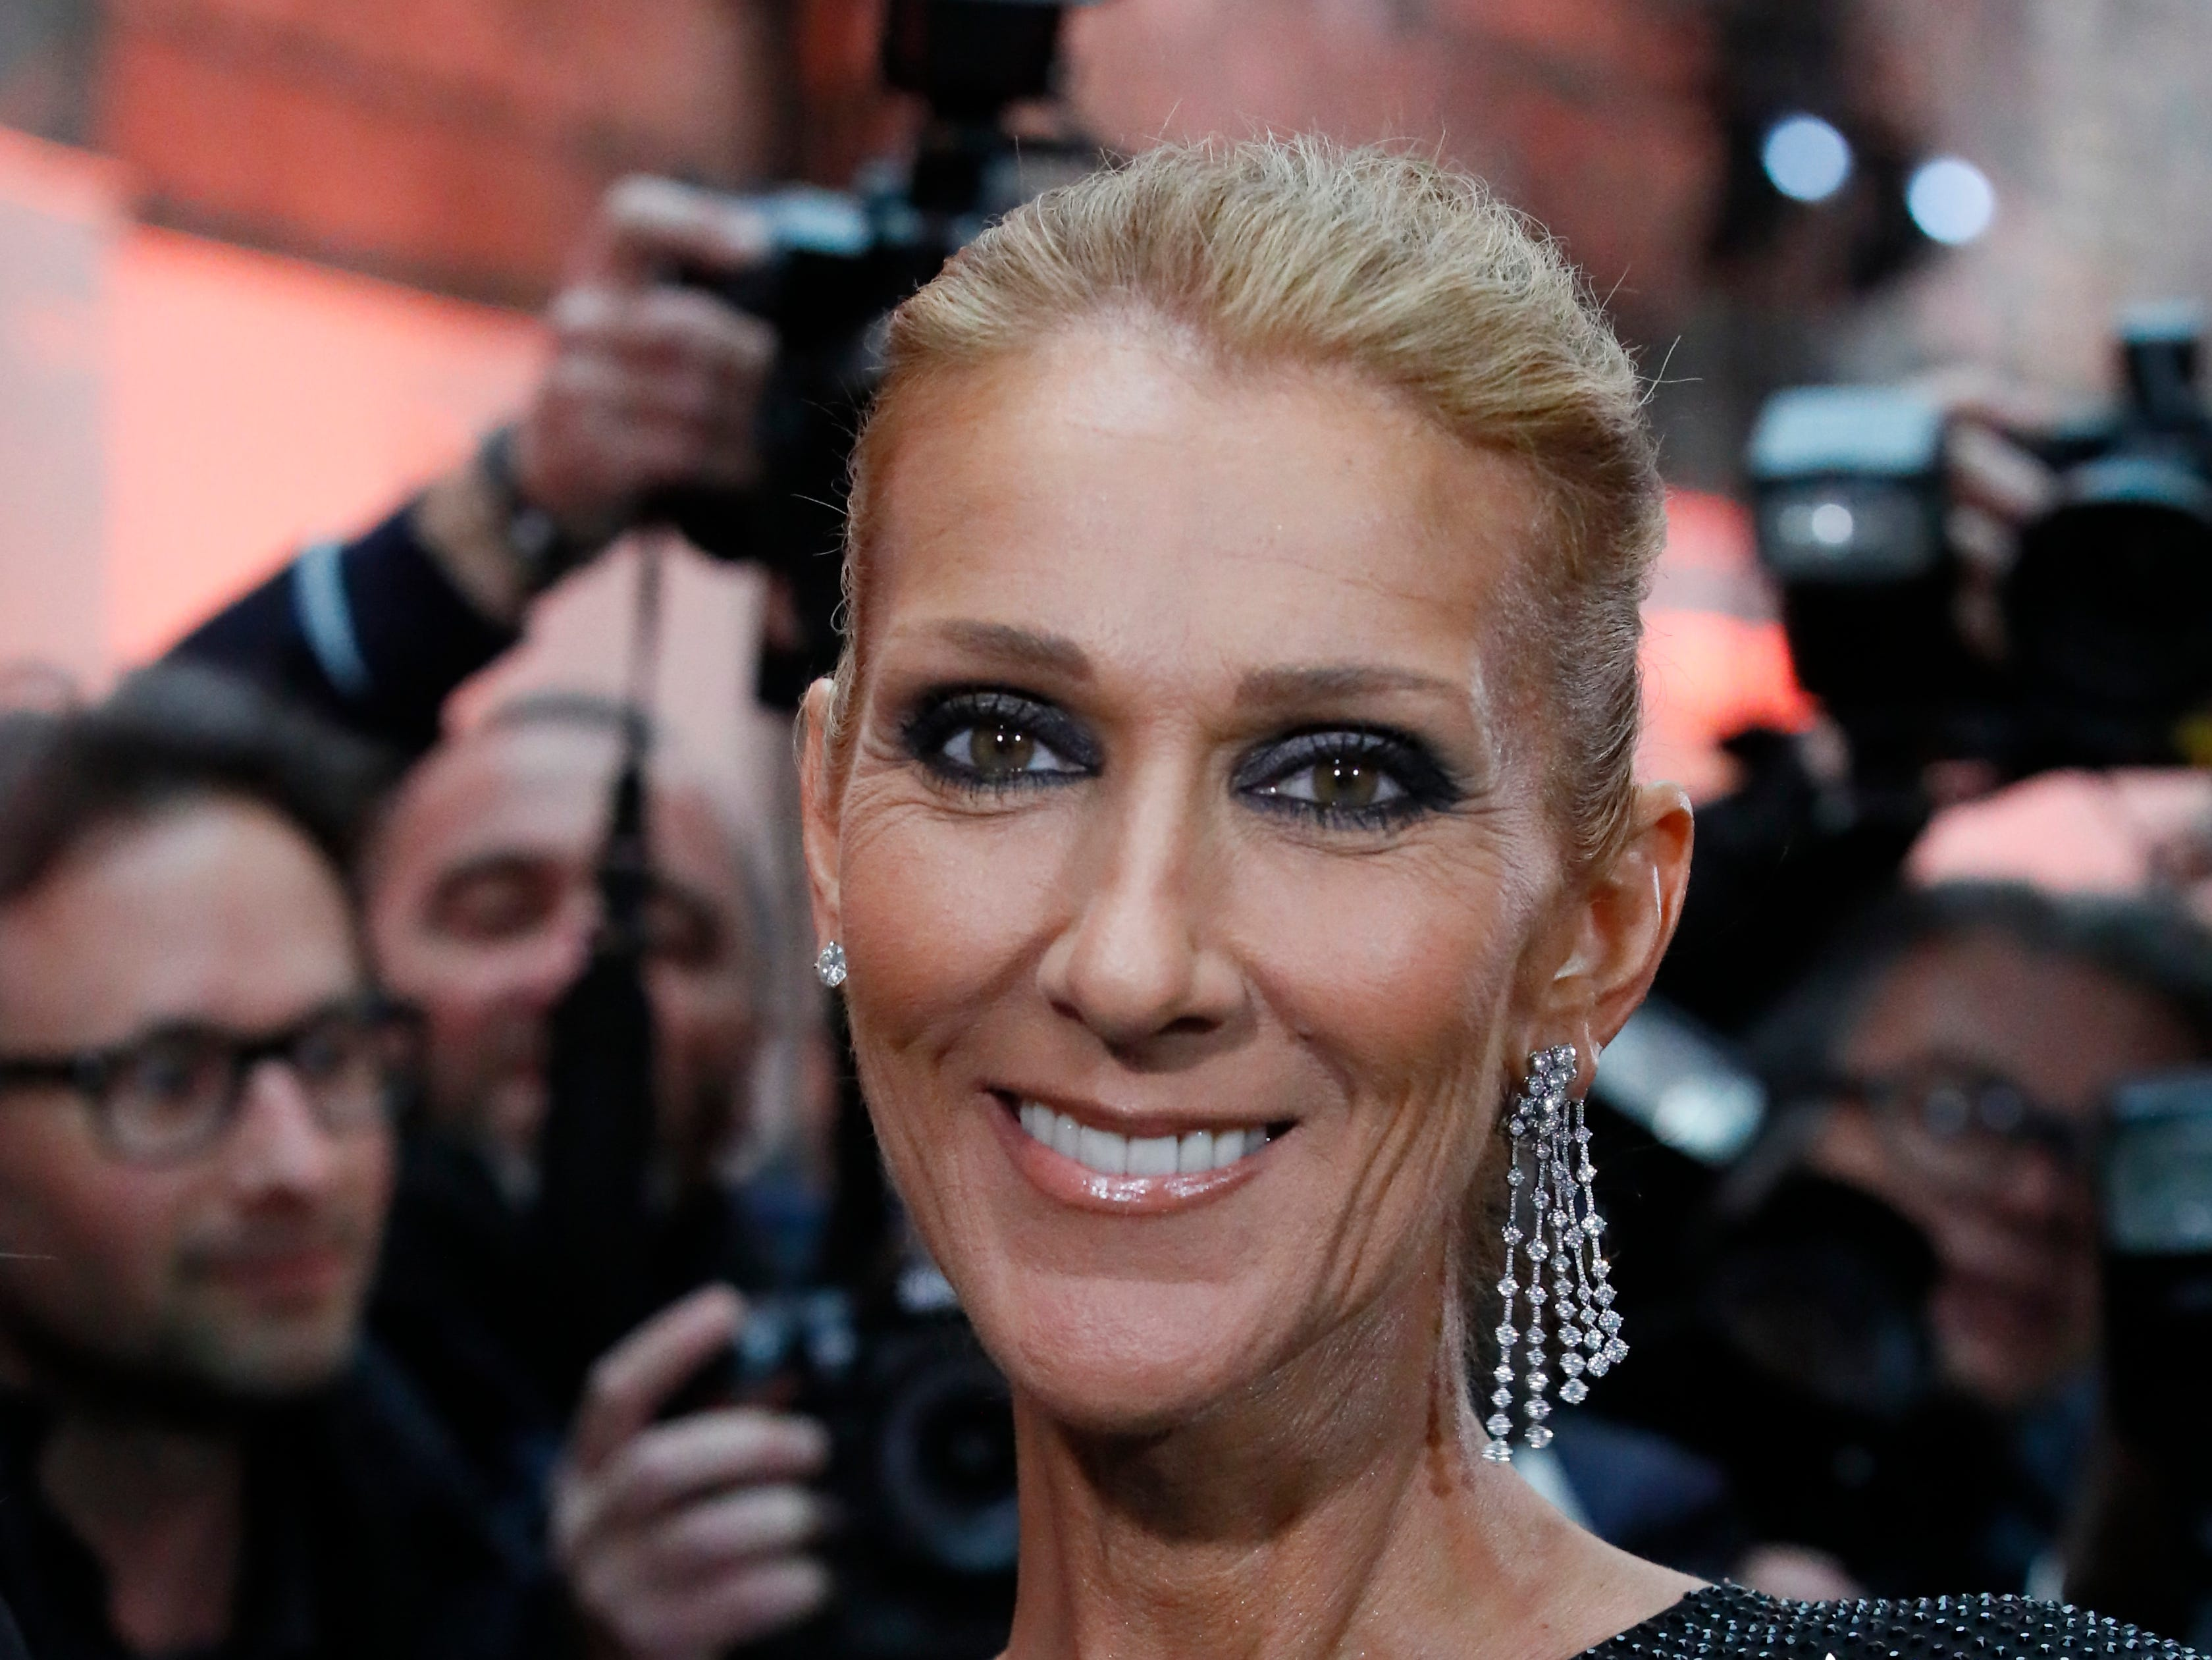 Singer Celine Dion arrives for the Vauthier Spring/Summer 2019 Haute Couture fashion collection presented in Paris, Tuesday Jan. 22, 2019. (AP Photo/Francois Mori) ORG XMIT: LENT153